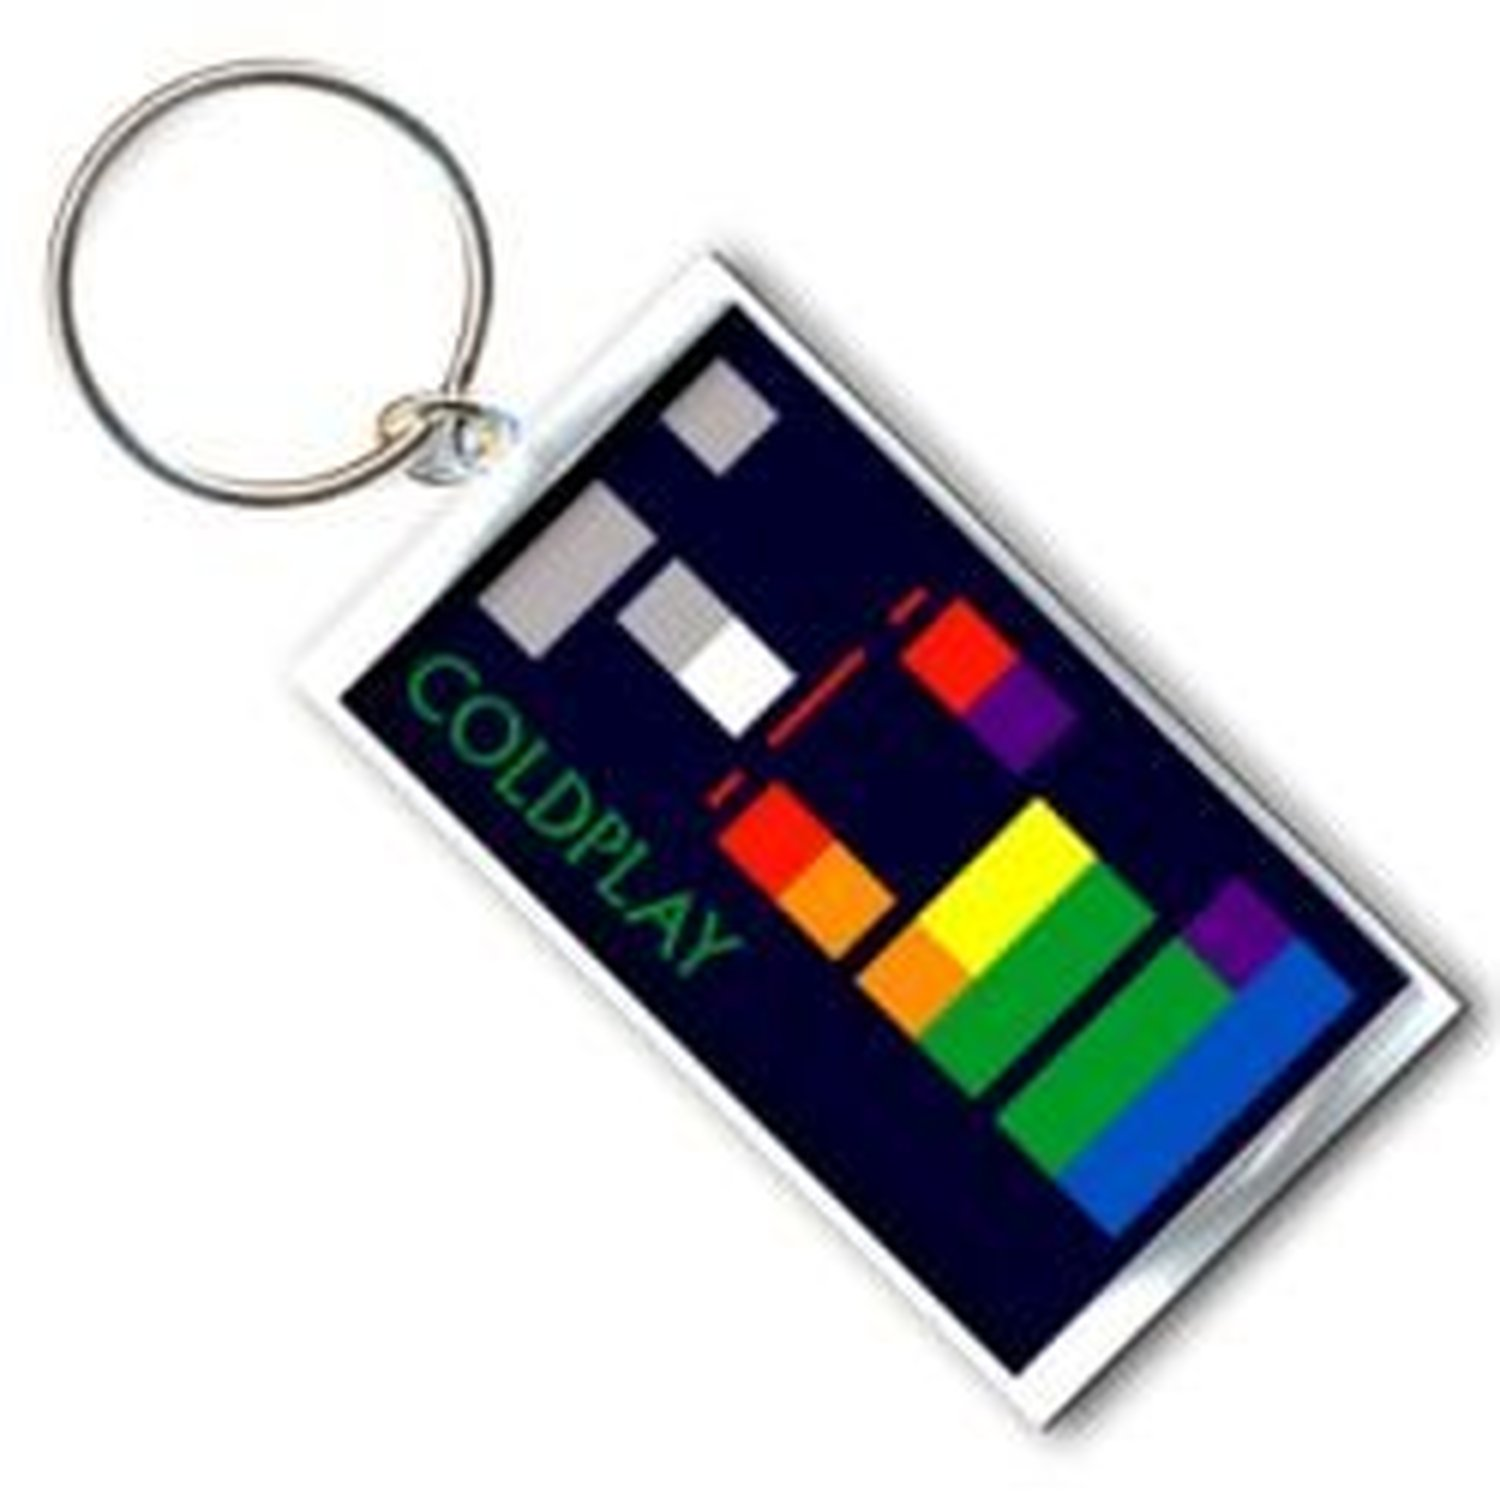 Details about Coldplay Band Logo X&Y Album Cover Metal Keychain Keyring Fan  Gift Official